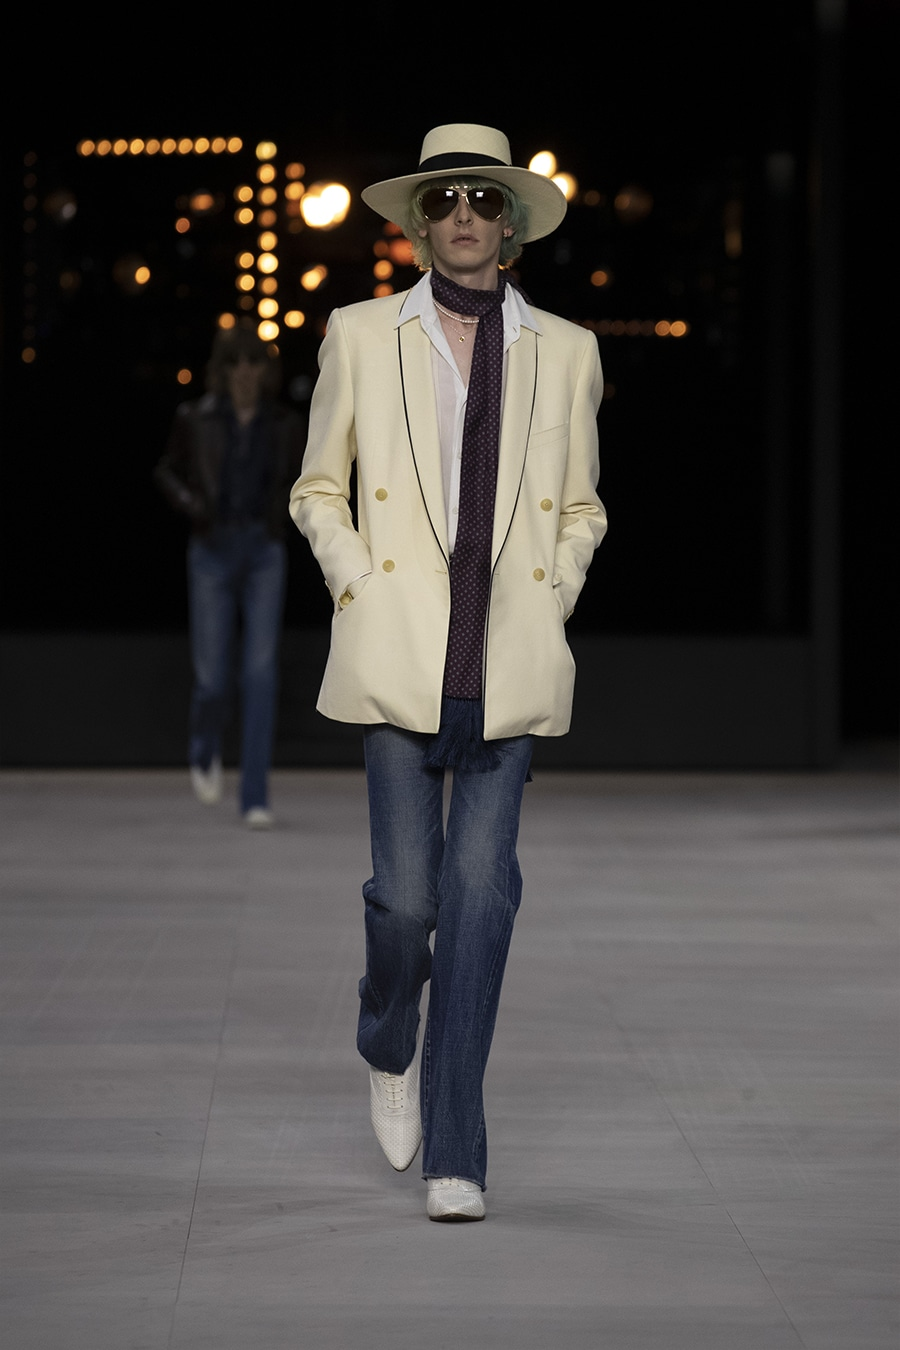 Model on Celine runway with velvet white blazer